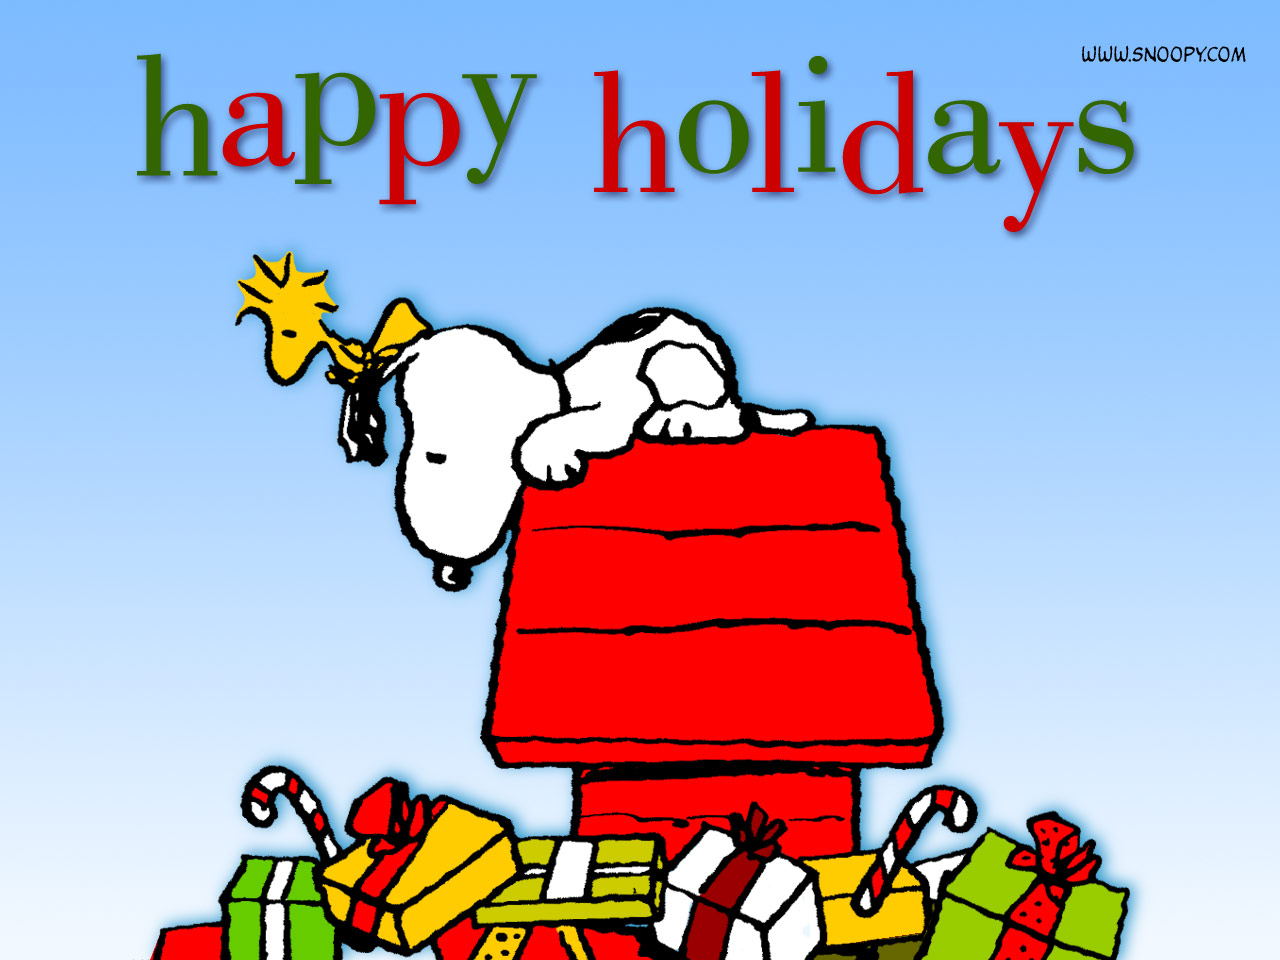 Snoopy Christmas   Peanuts Wallpaper 452771 1280x960